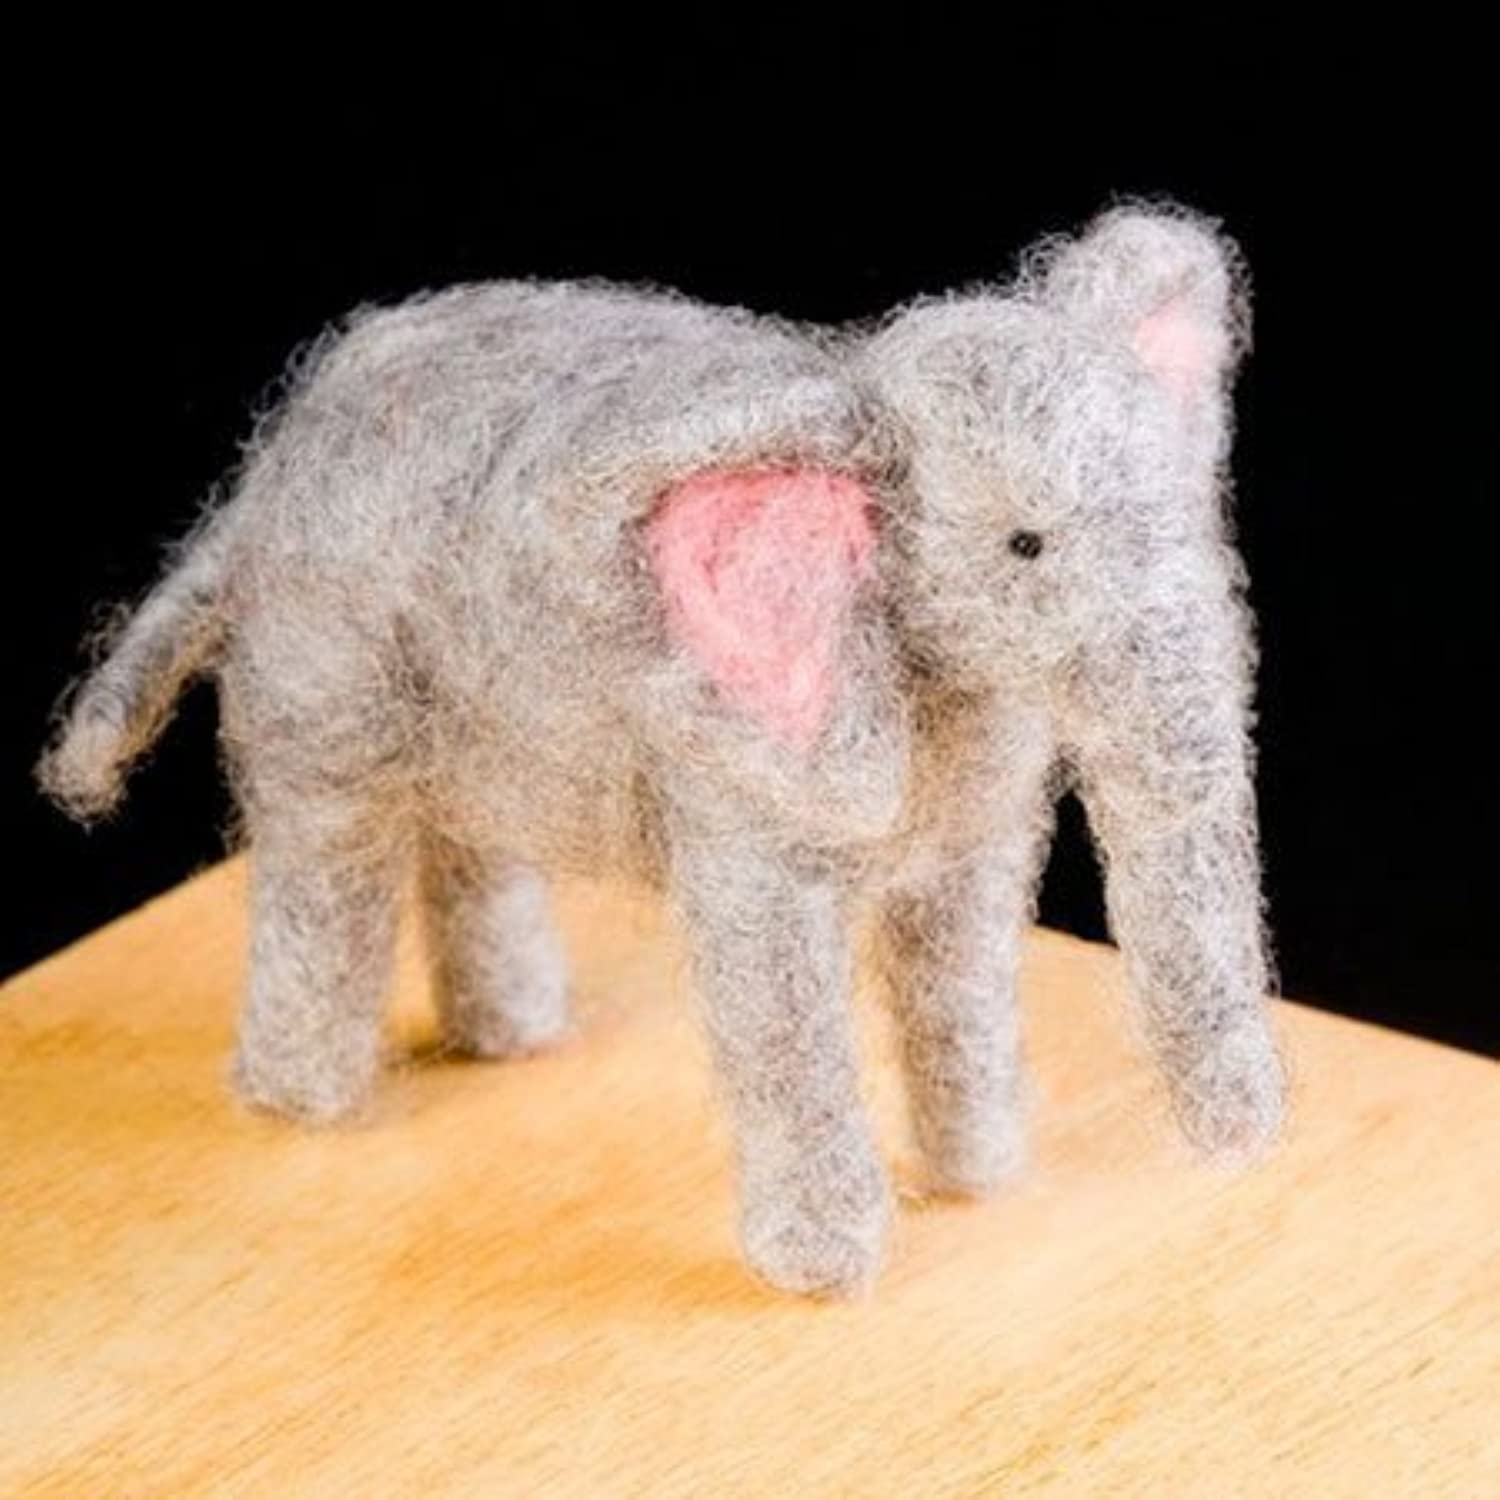 Elephant Wool Needle Felting Craft Kit by WoolPets. Made in the USA. by WoolPets